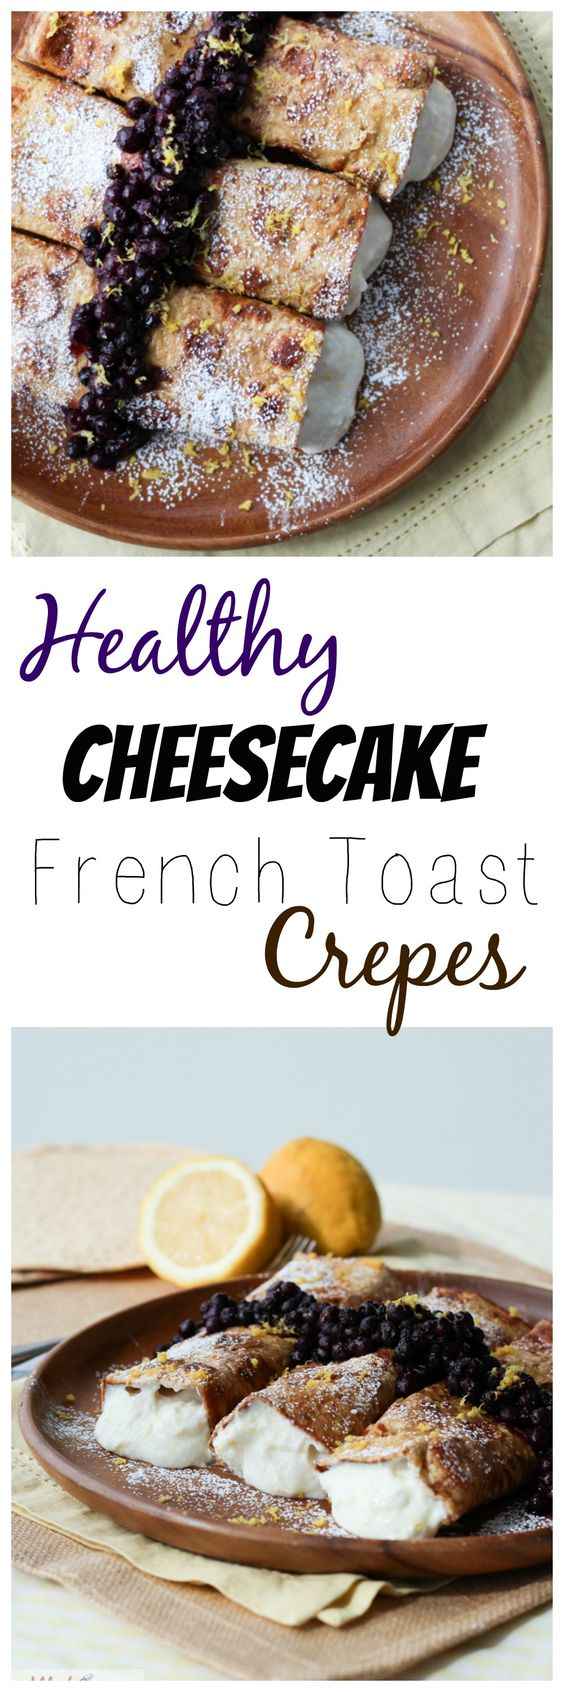 Healthy Stuffed French Toast Crepes with Vanilla Berry Compote made from sandwich wraps that is low in carbs, high in protein and high in fibre.